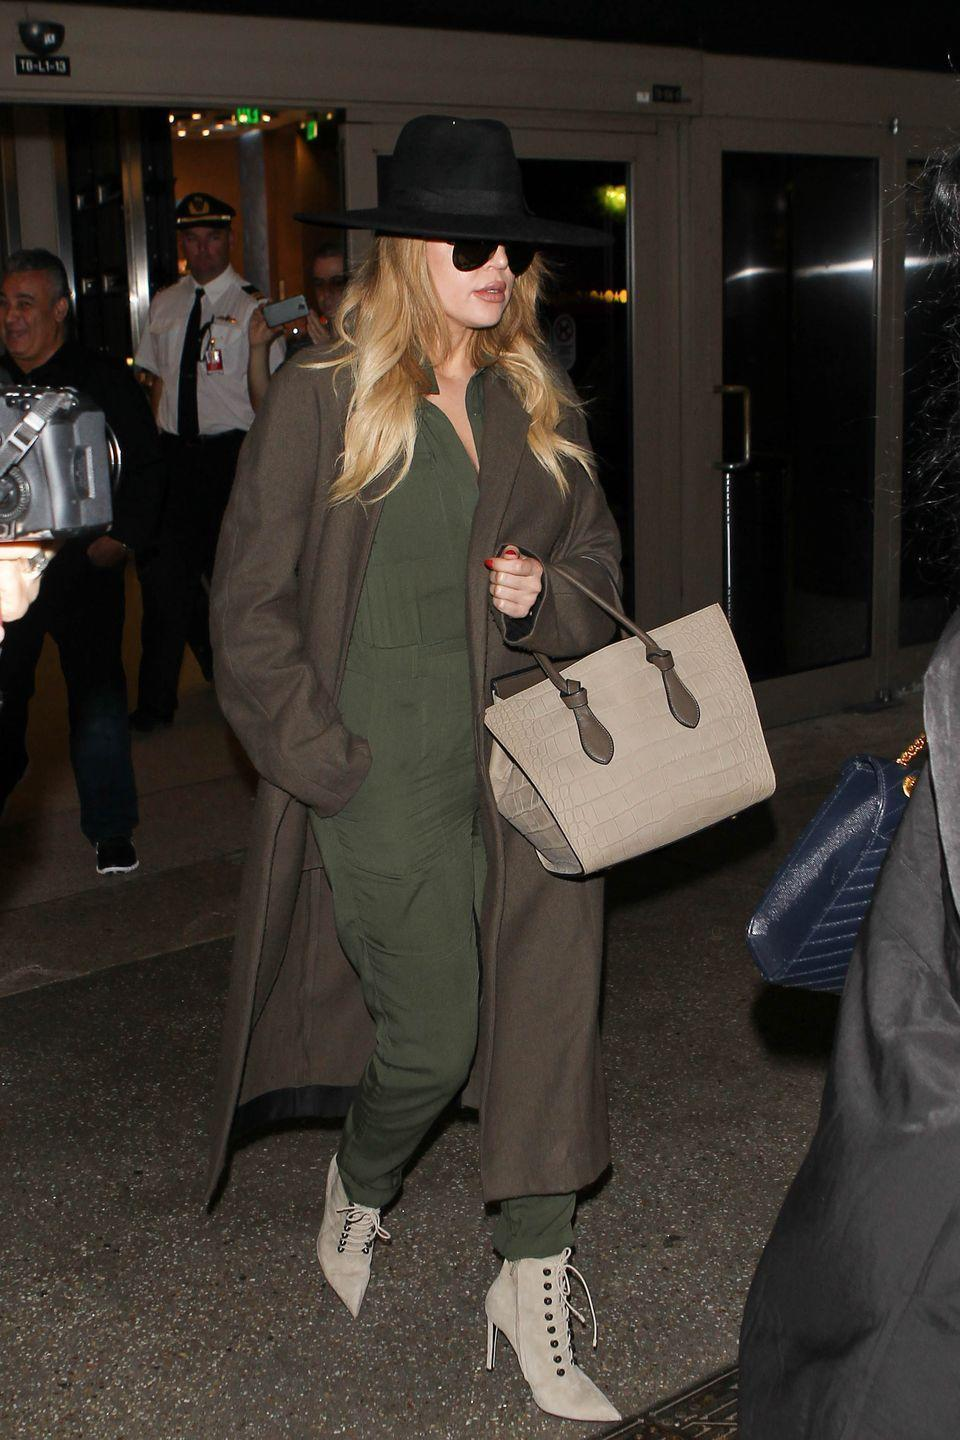 <p><strong>Khloé Kardashian, 2015</strong>: I get it: jumpsuits SEEM like practical airplane wear, very <em>Top Gun</em>-y and sporty and casual chic! But then you have to pee and you're topless in an 2x2 plane bathroom or gross airport stall with your sleeves around your ankles and...never again.</p>